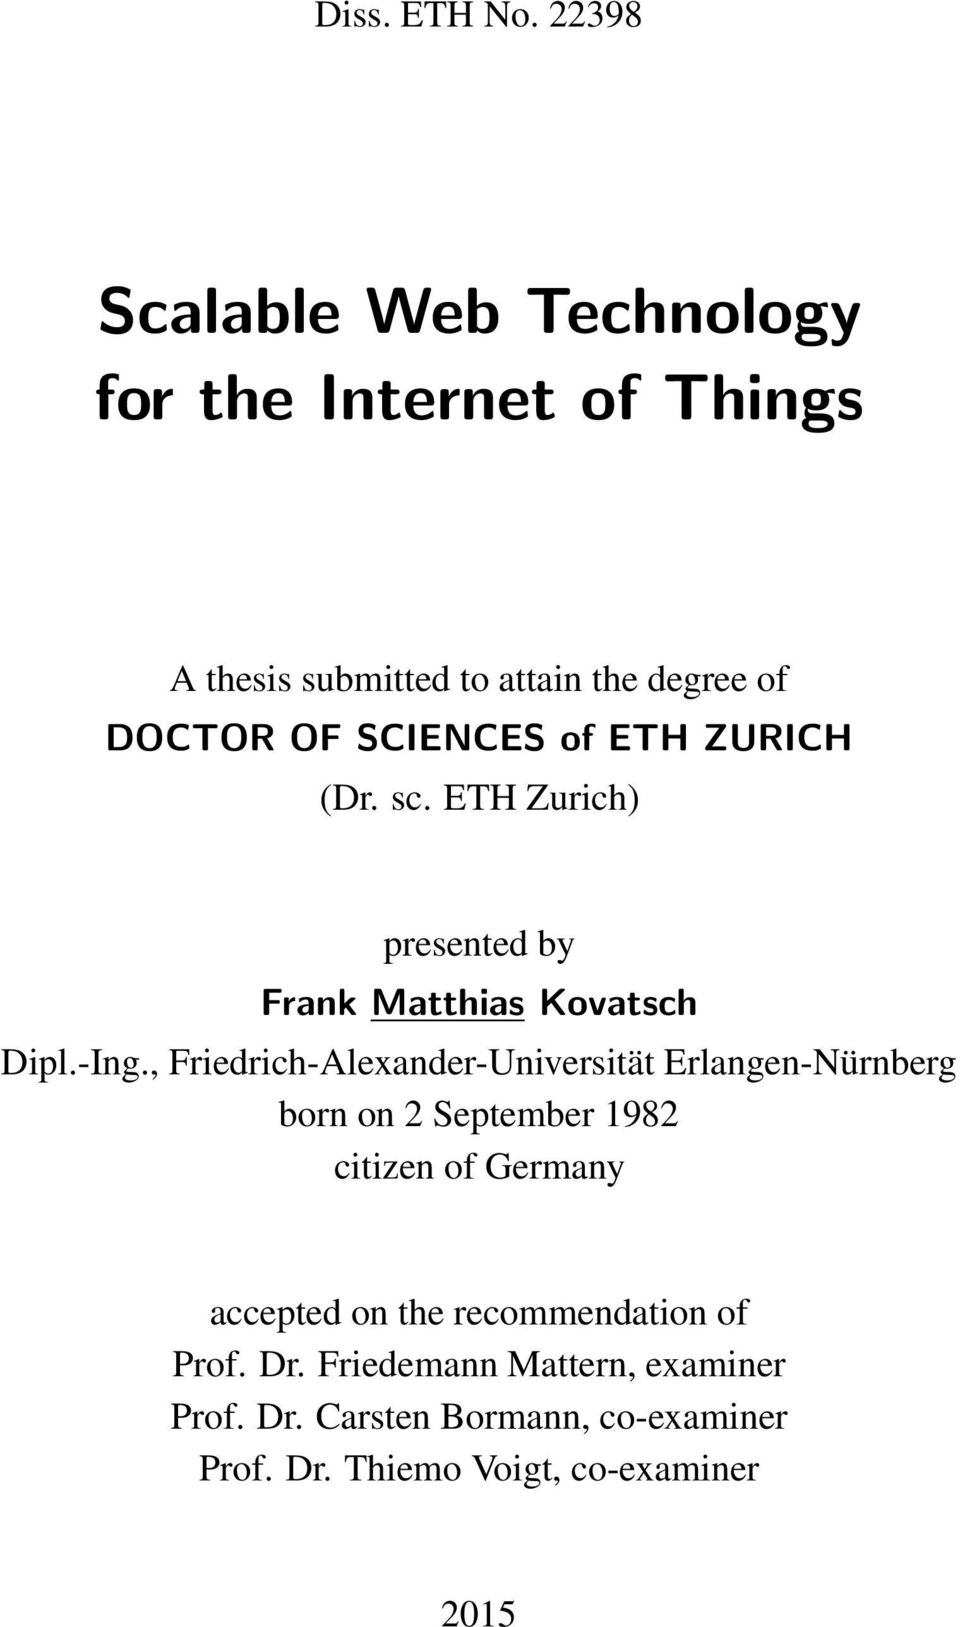 SCIENCES of ETH ZURICH (Dr. sc. ETH Zurich) presented by Frank Matthias Kovatsch Dipl.-Ing.